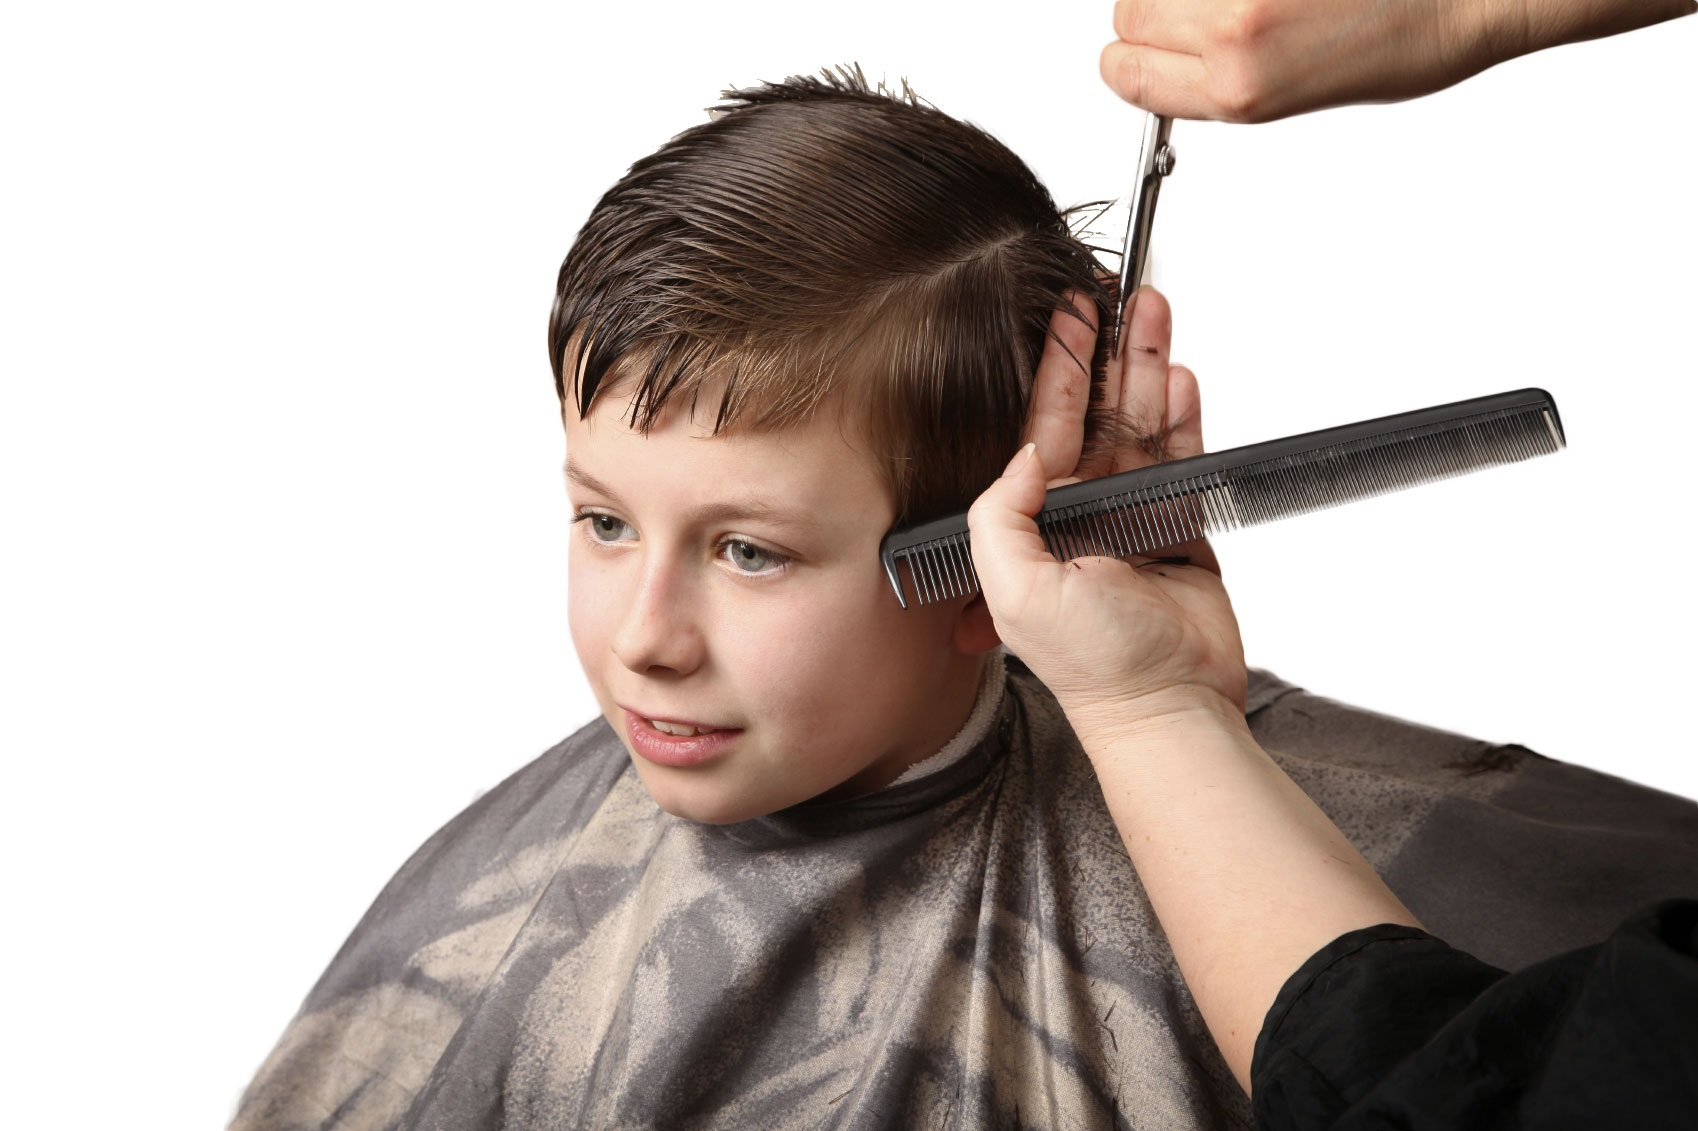 Cut Hair Freely for Poor Children